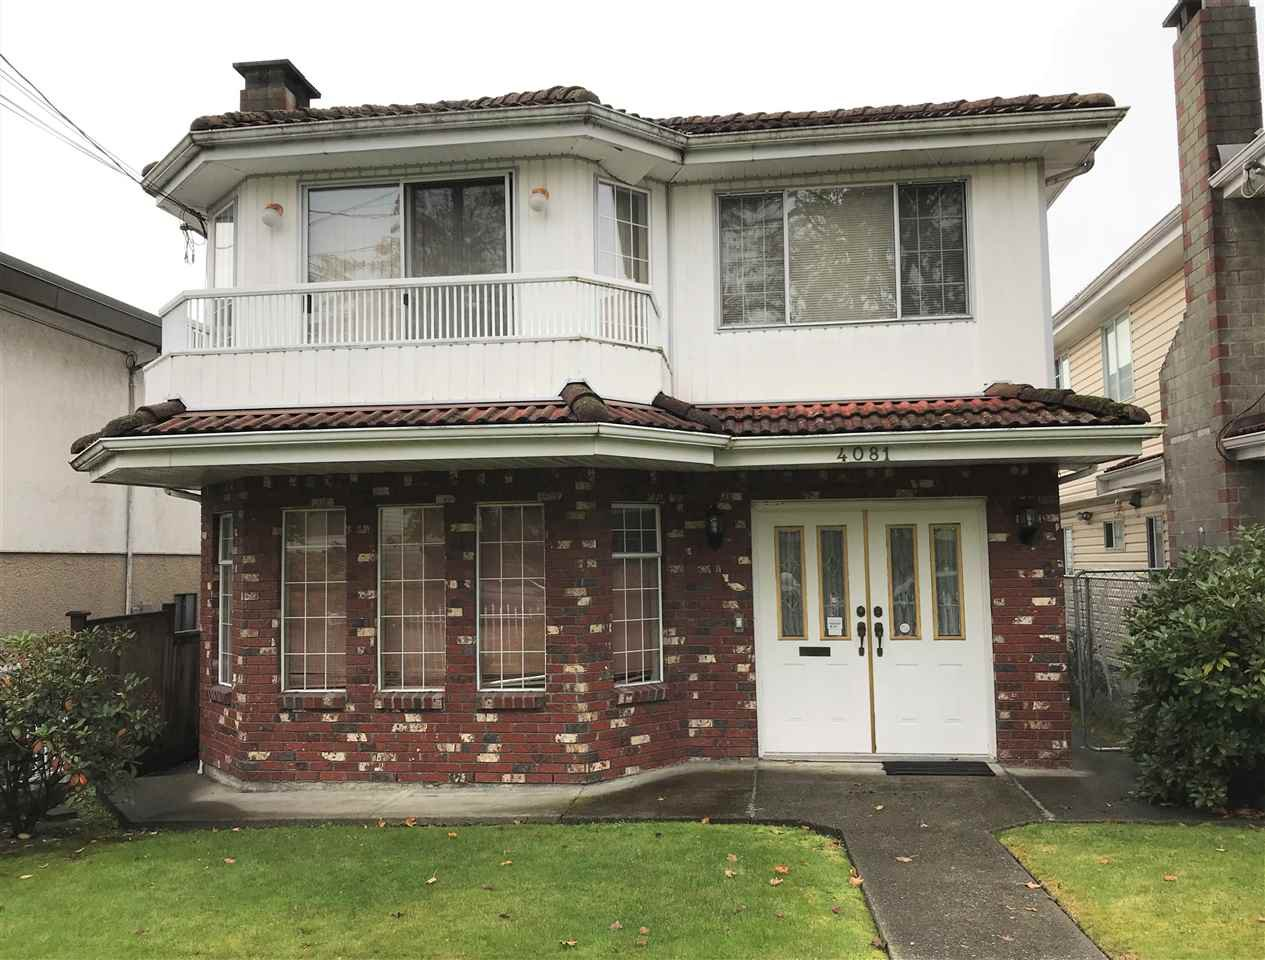 Main Photo: 4081 WELWYN Street in Vancouver: Victoria VE House for sale (Vancouver East)  : MLS®# R2414776